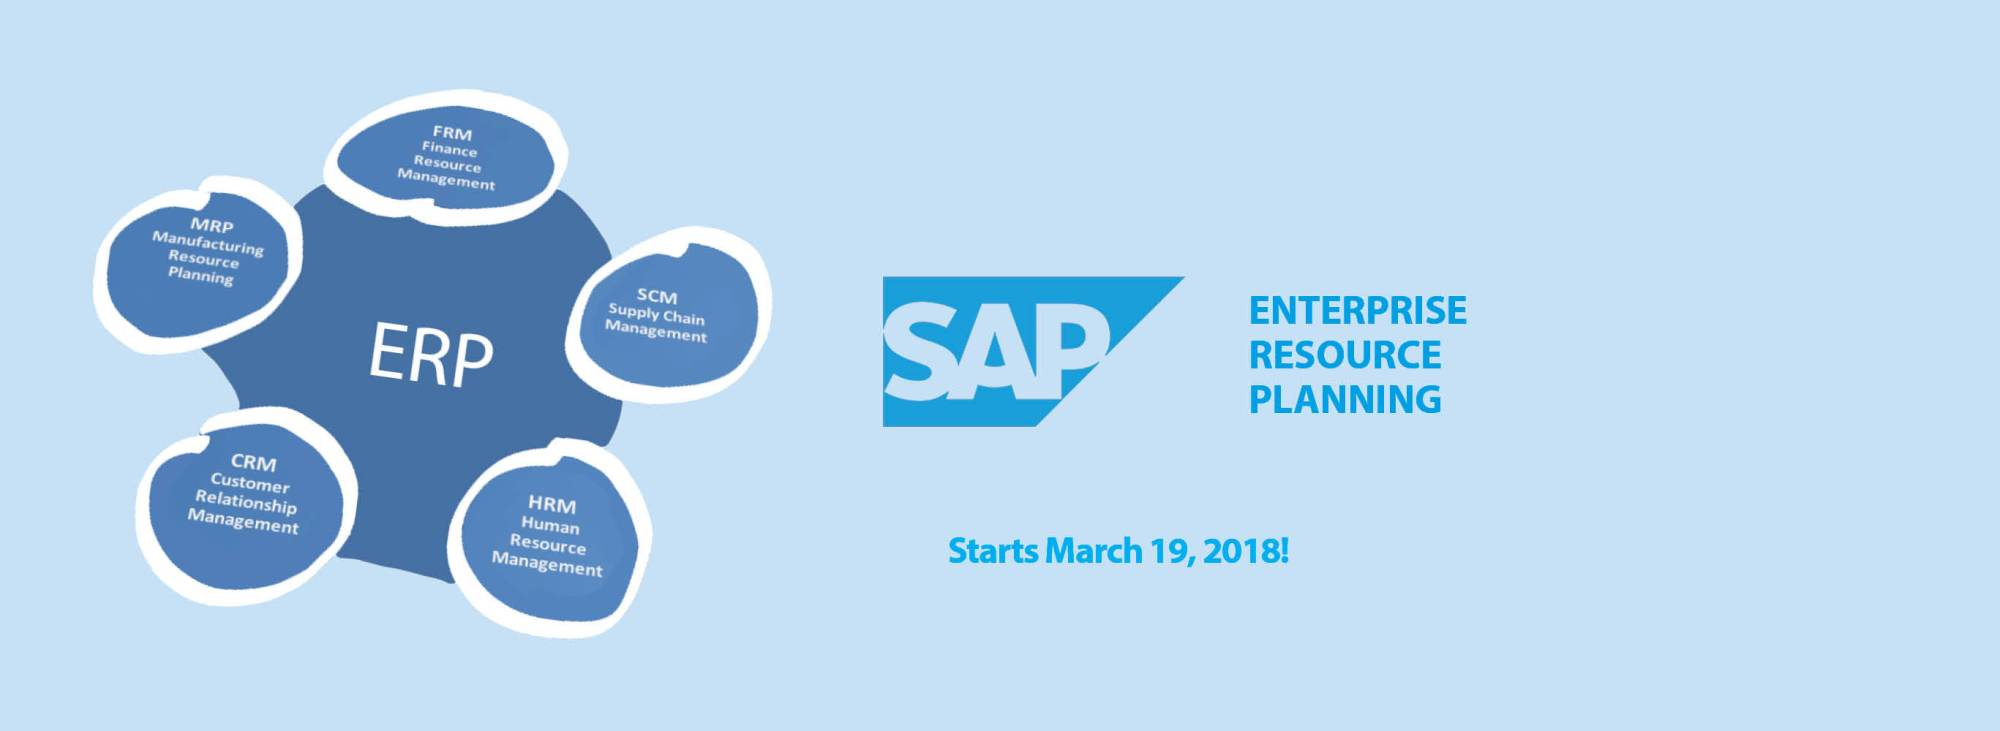 hight resolution of sap enterprise resource planning